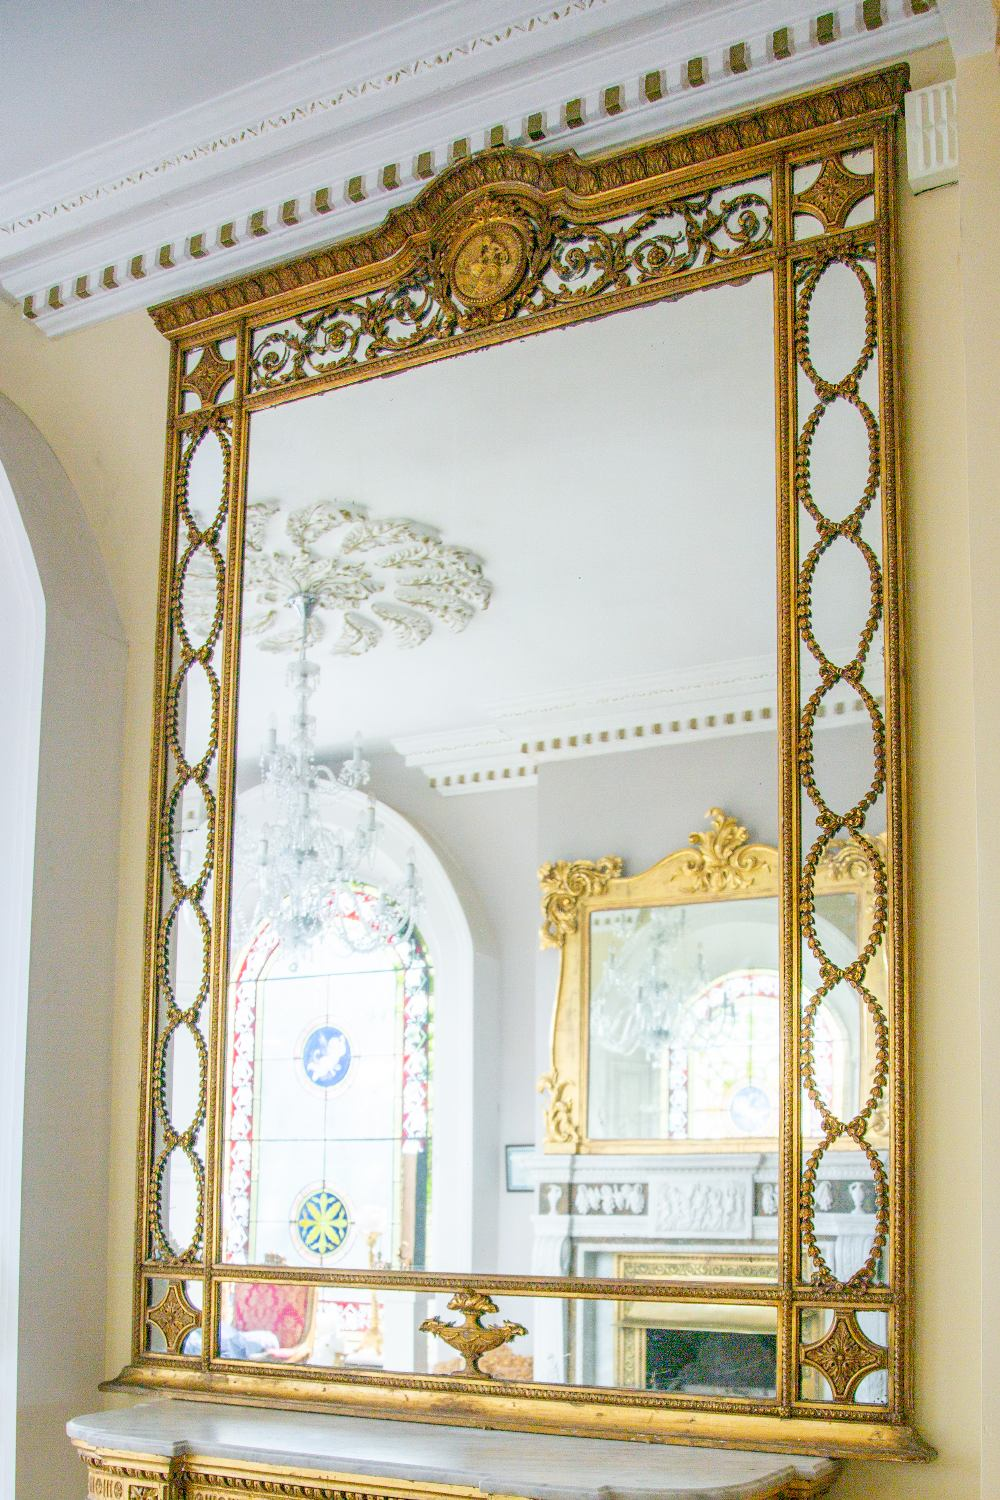 A fine 19th Century Regency style giltwood Wall Mirror or Overmantel, the arched and leaf moulded